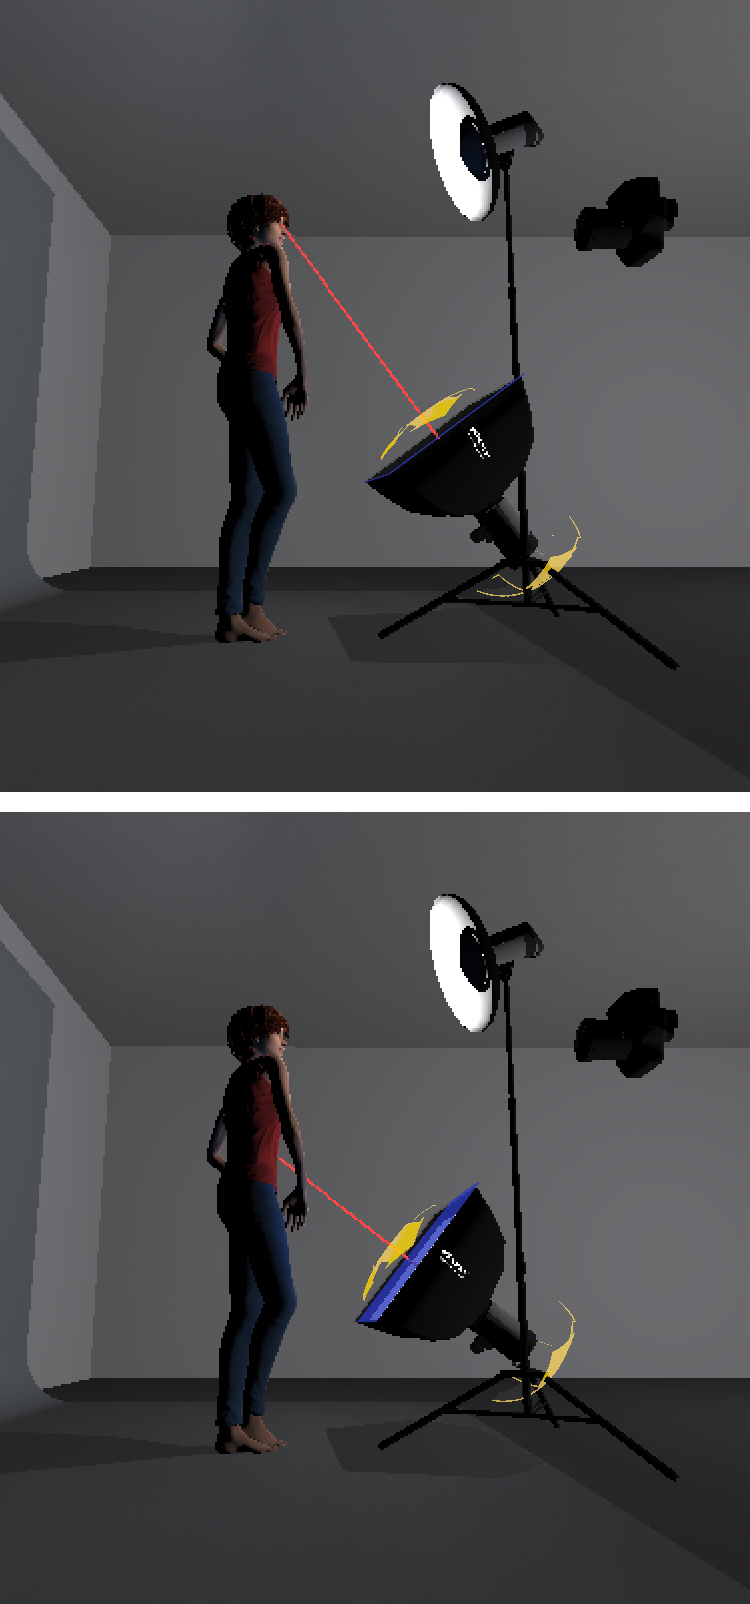 The image at the top displays the common and most obvious fill light placement with it being pointed directly at the models face. This creates an overpowering and often unflattering light due to the softboxes hotspot.The bottom image instead shows a softbox pointed at the models torso,allowing for a far more flattering light to fall onto the face.